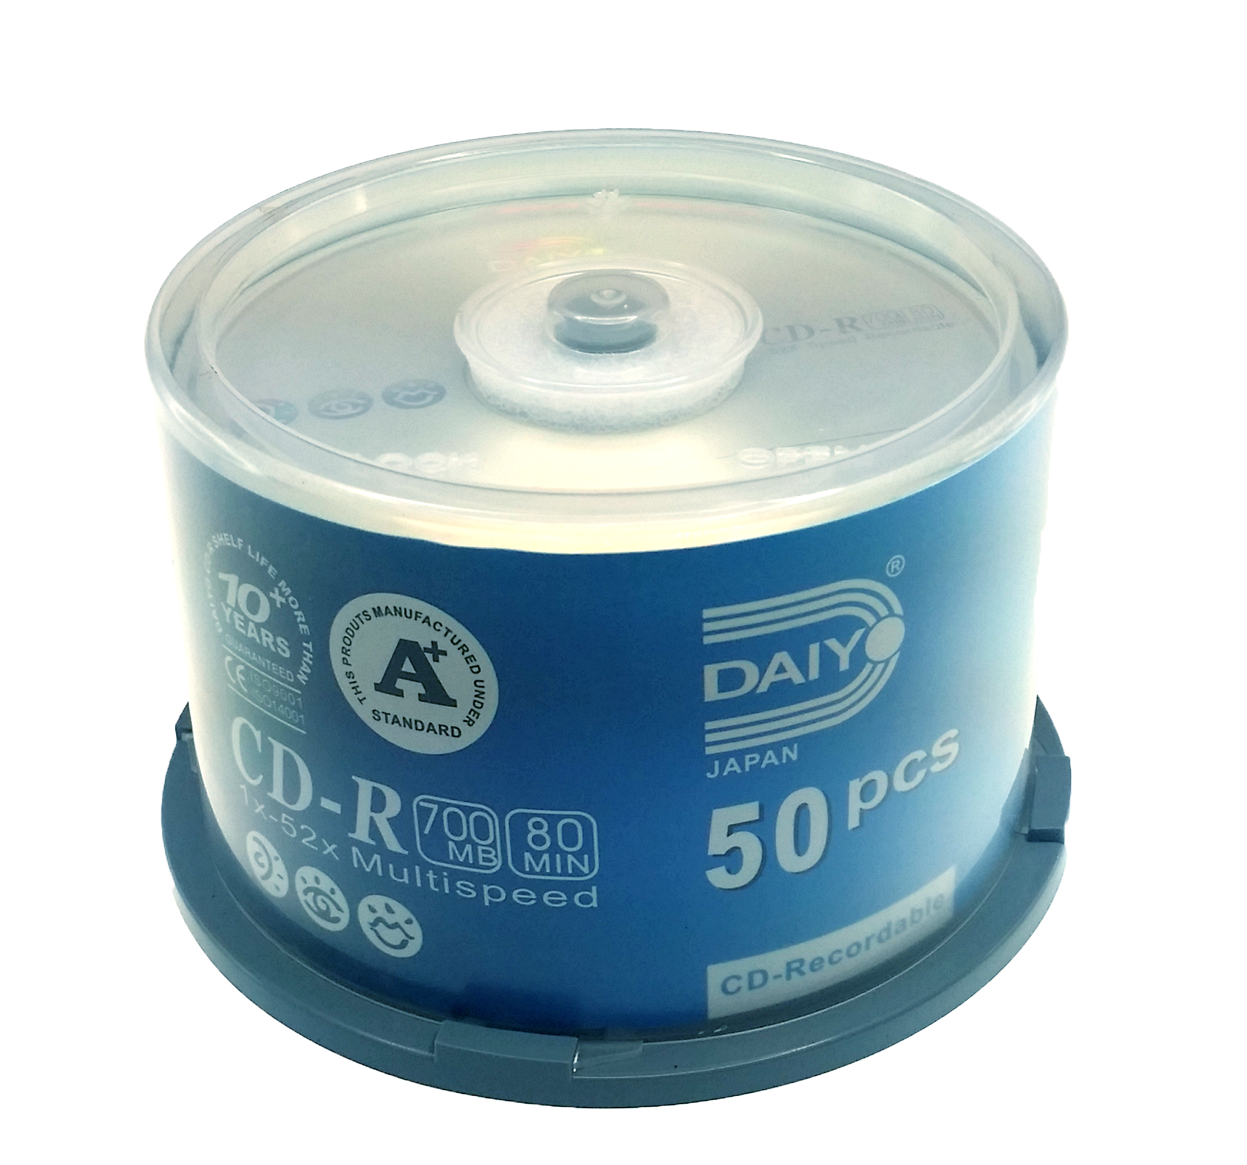 CD-R 700MB 1X-52X (50 Pcs) Spindle